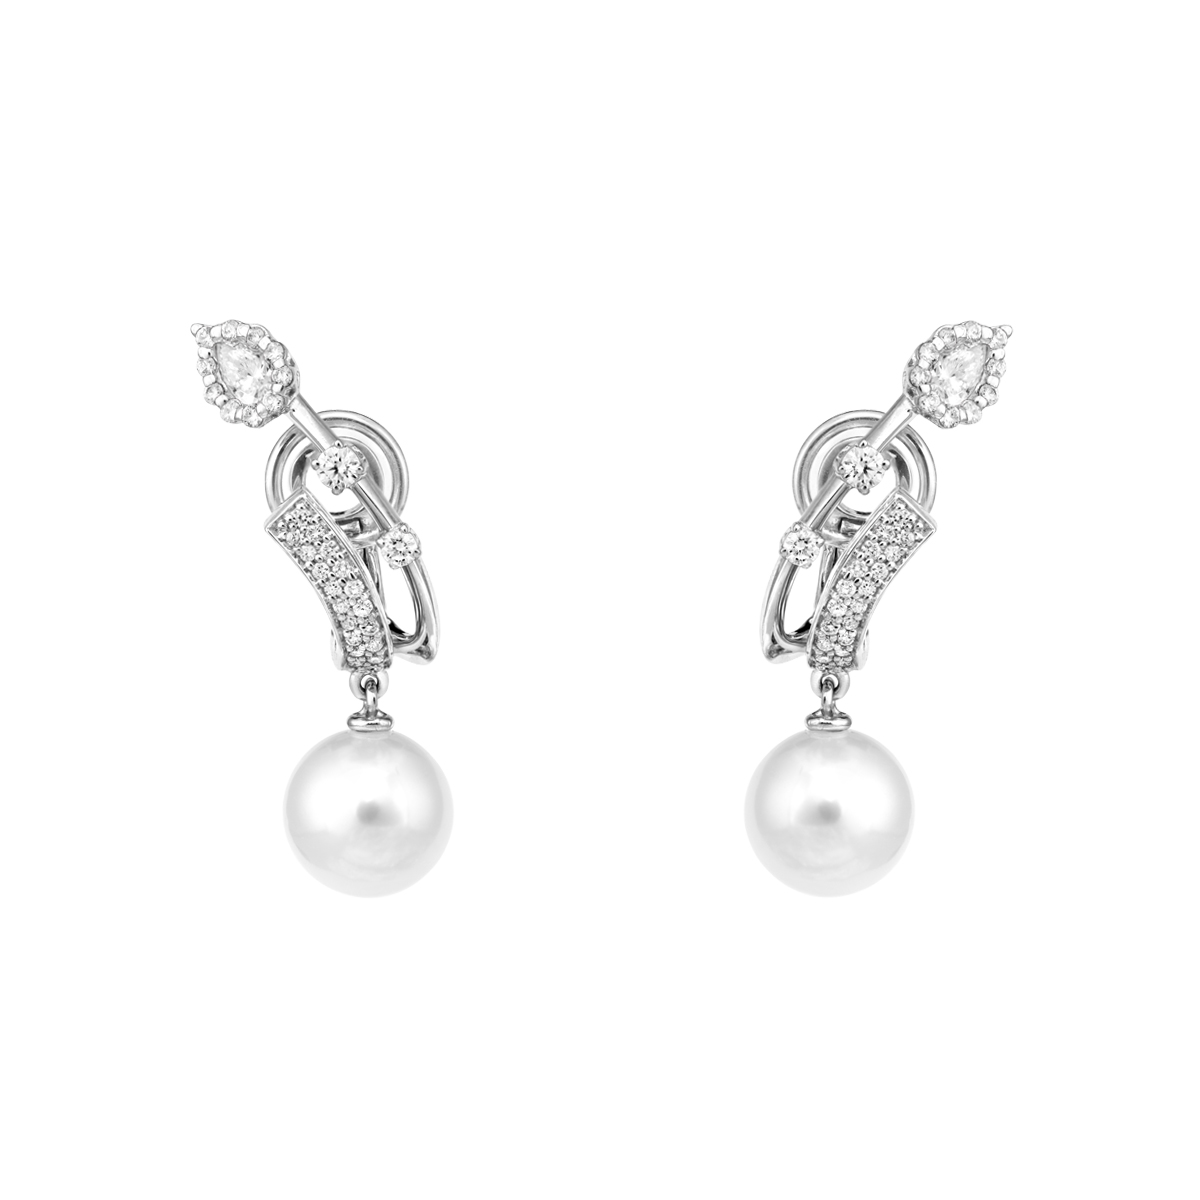 Pearlescent Earrings by YEPREM in 18K White Gold with Diamonds and 2 Pearls ($5,200)